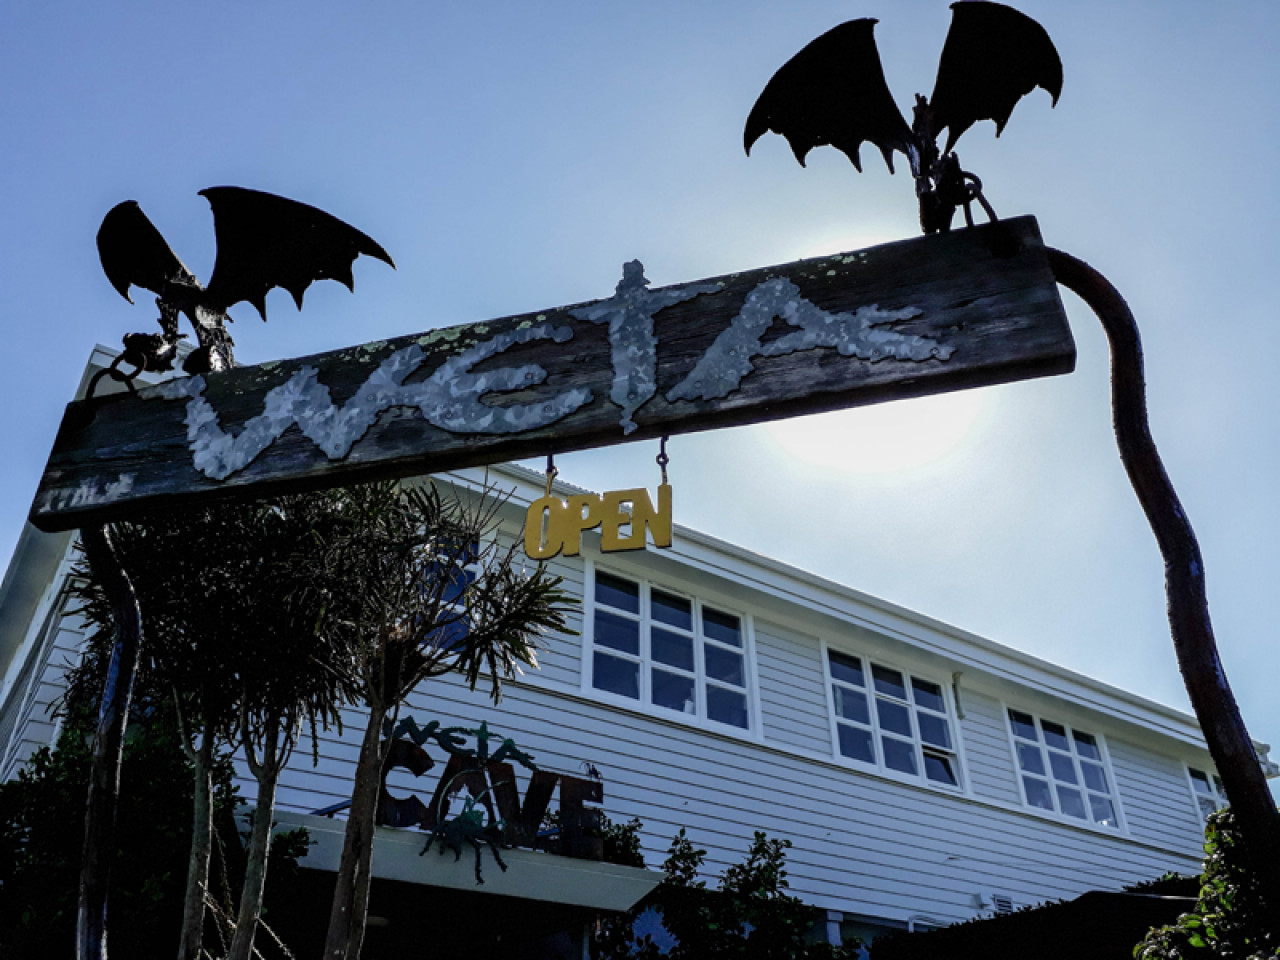 The Weta Cave is also the assembly point for the Weta Workshop Tours that showcase props from movies such as The Lord of the Rings, King Kong or District 9.